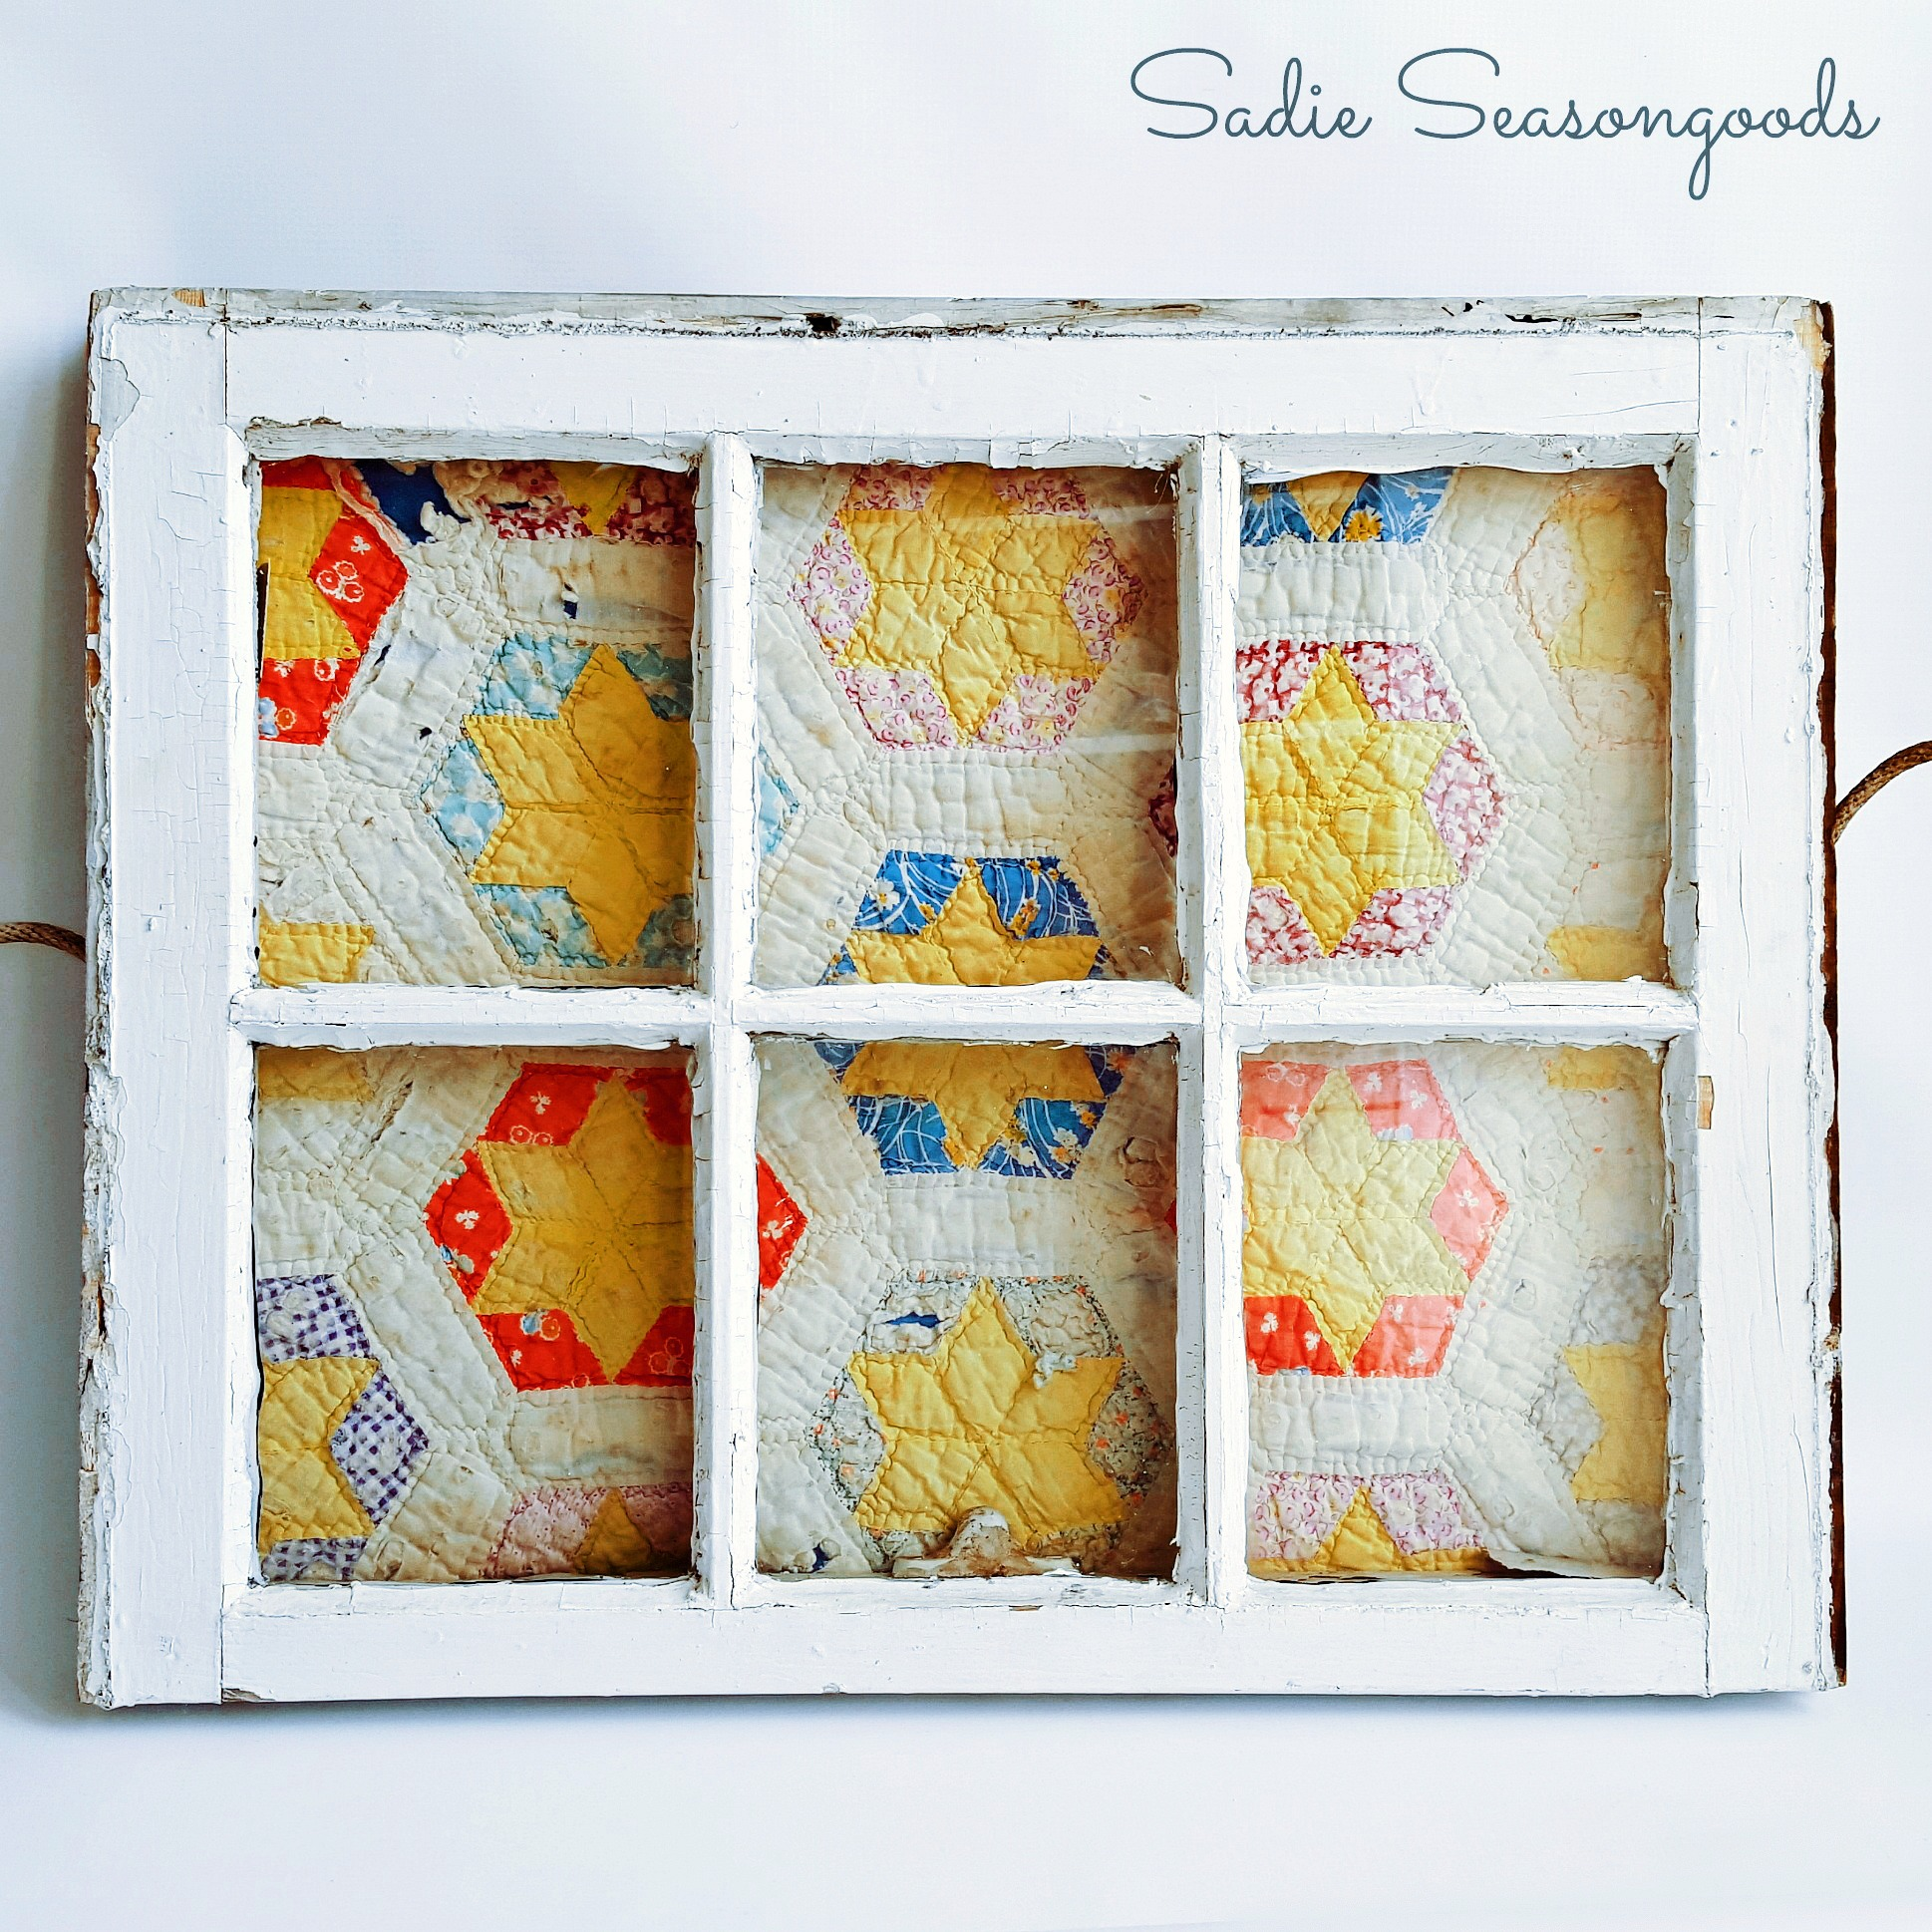 Quilt wall art in an old window, by Sadie Seasongoods, featured on Funky Junk Interiors